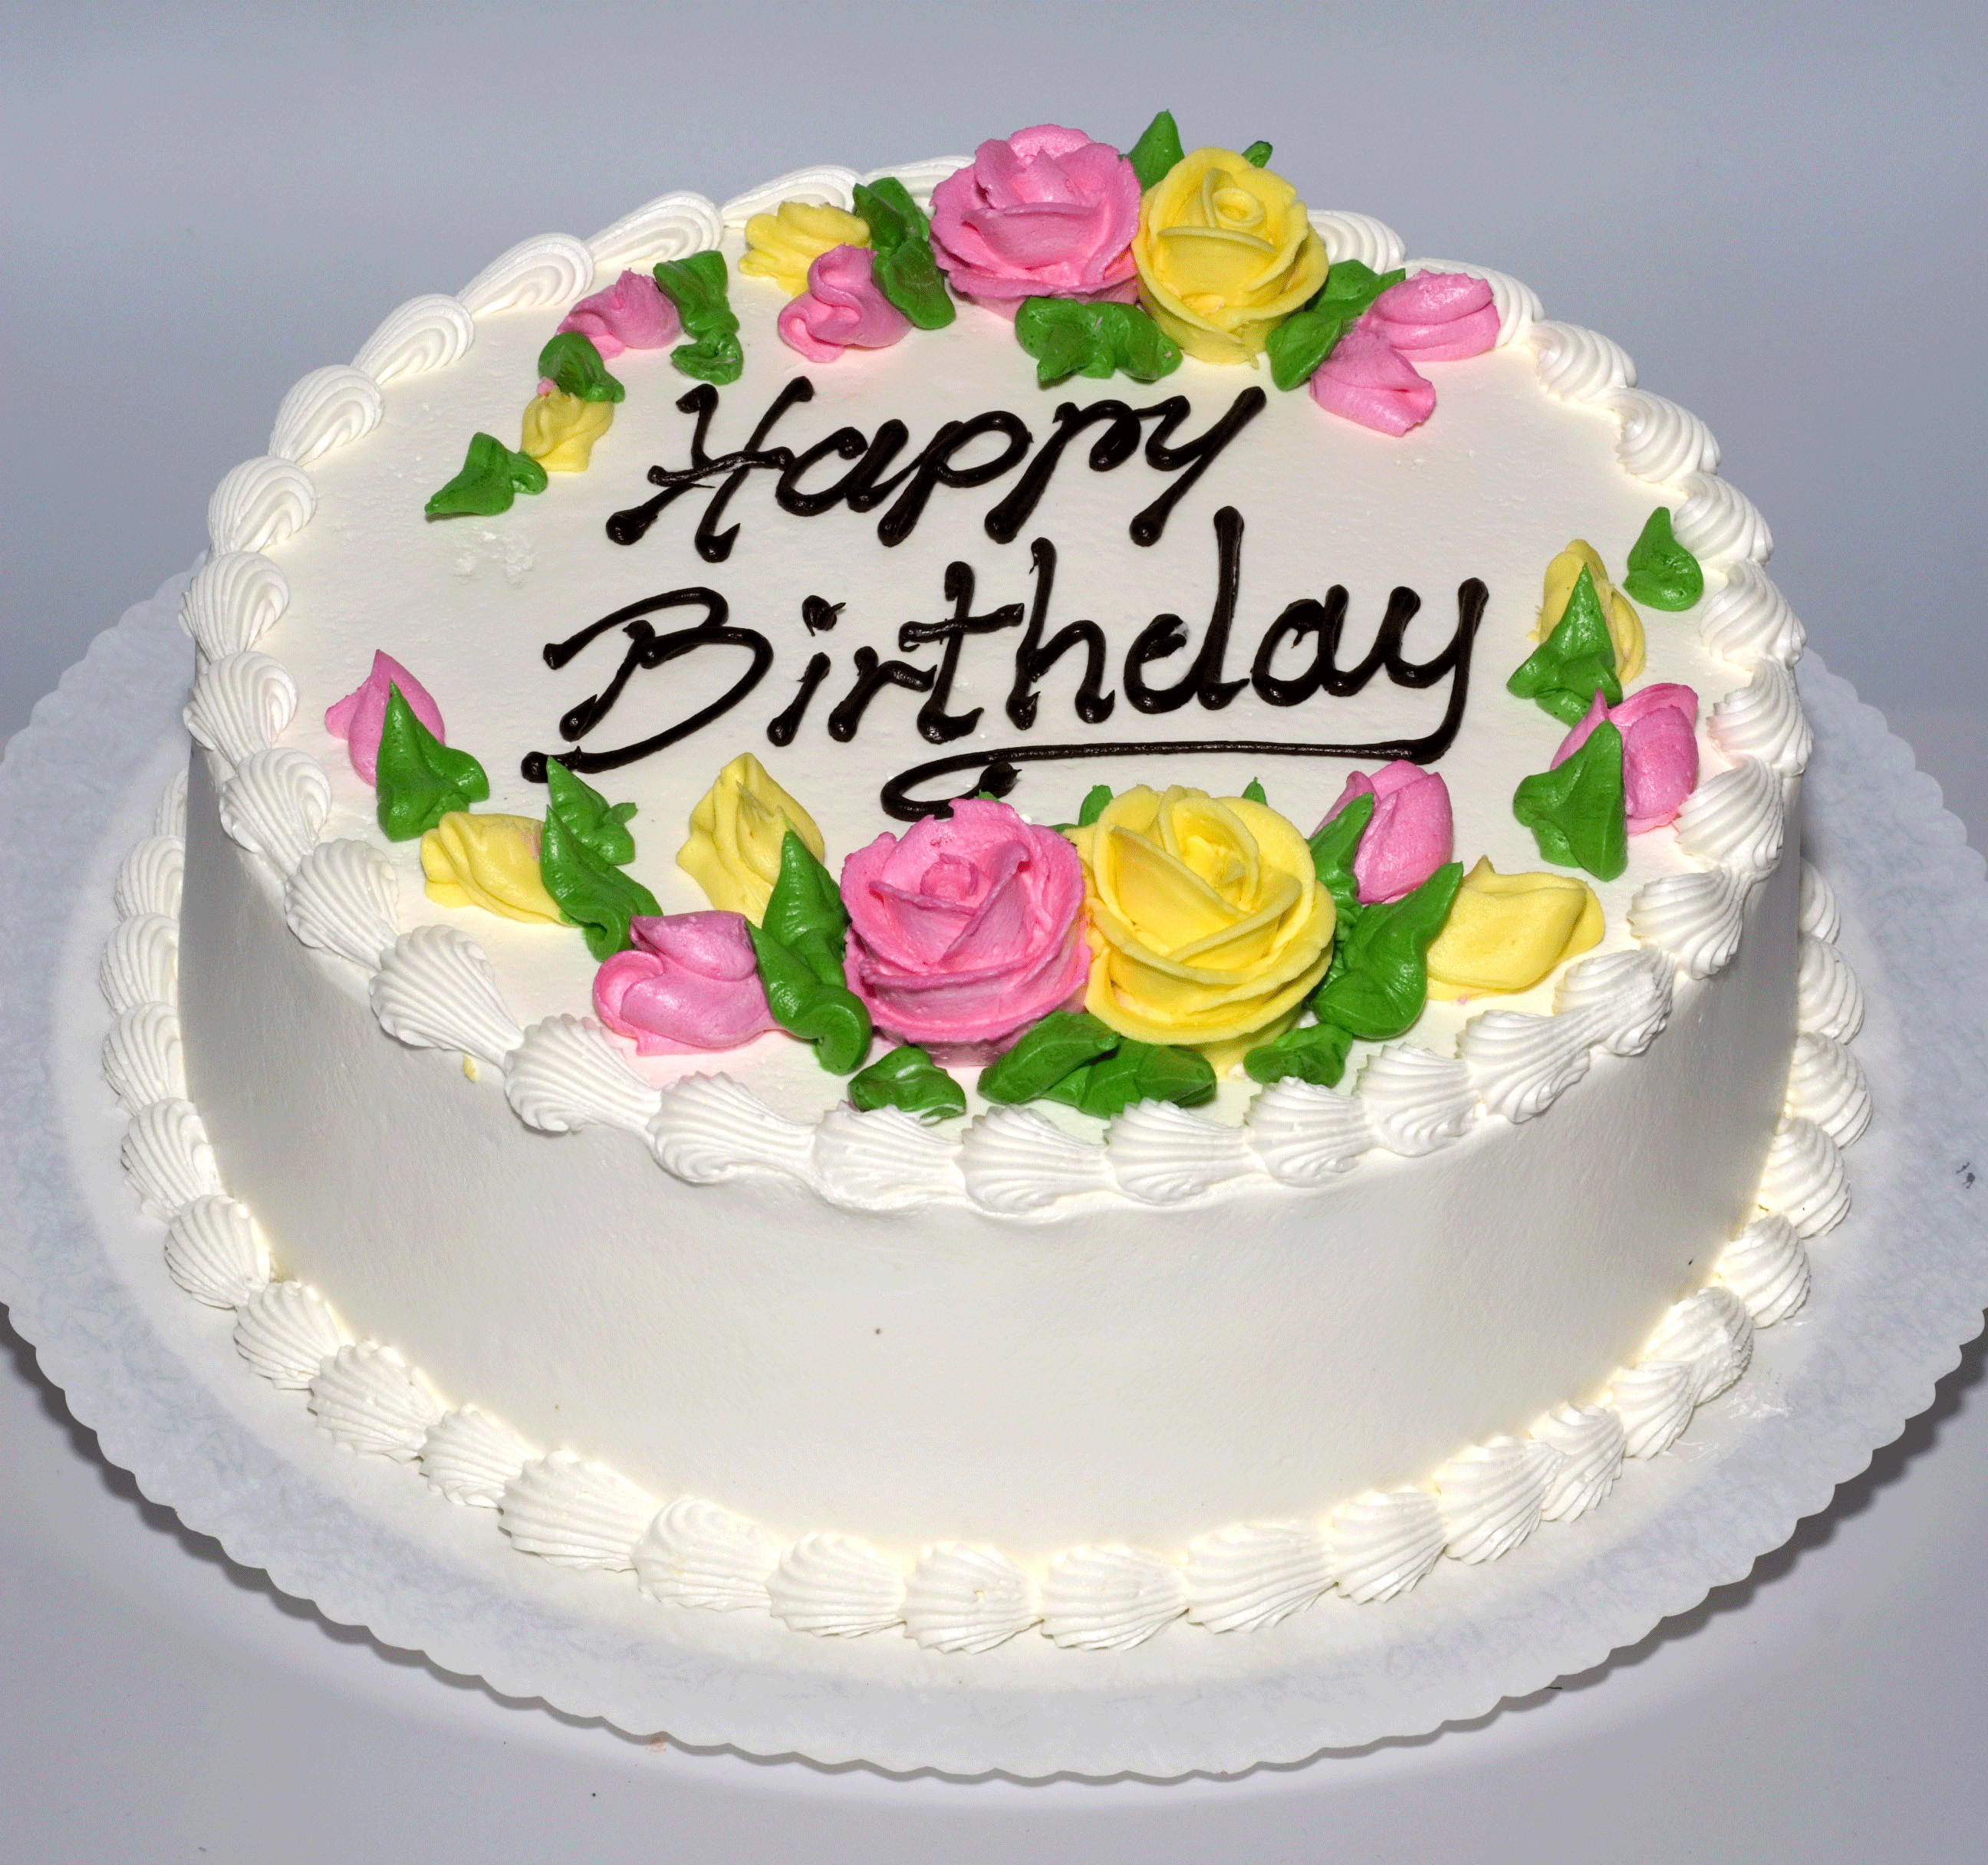 Birthday Pastry Cake Images Download : Birthday cake with sugar flowers from Zomick s bakery in ...